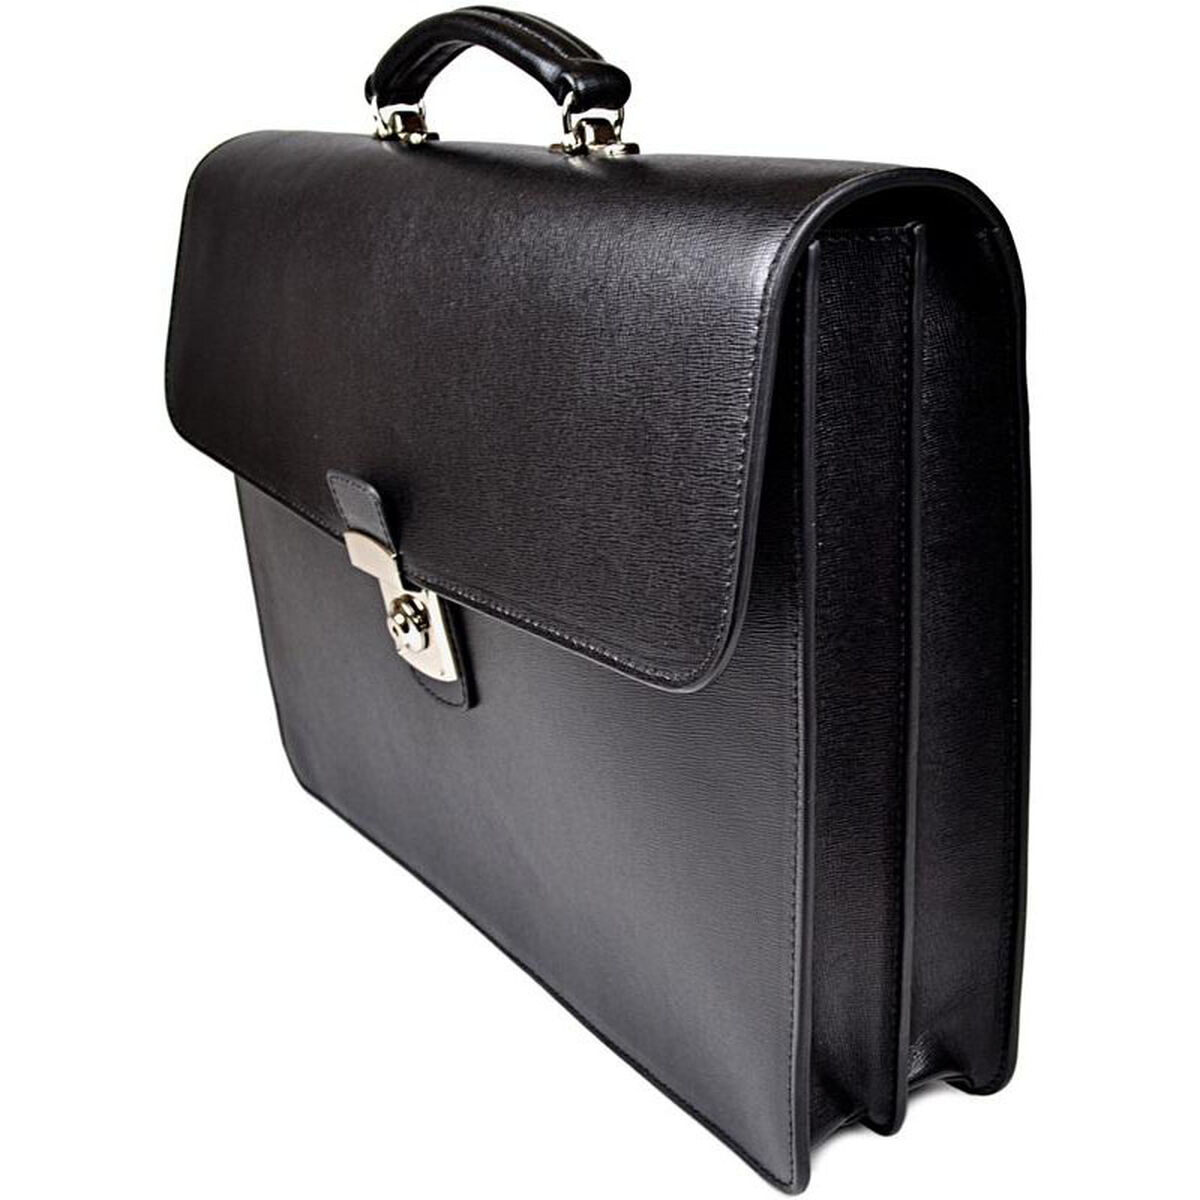 Our Kensington Double Gusset Briefcase With Suede Lining